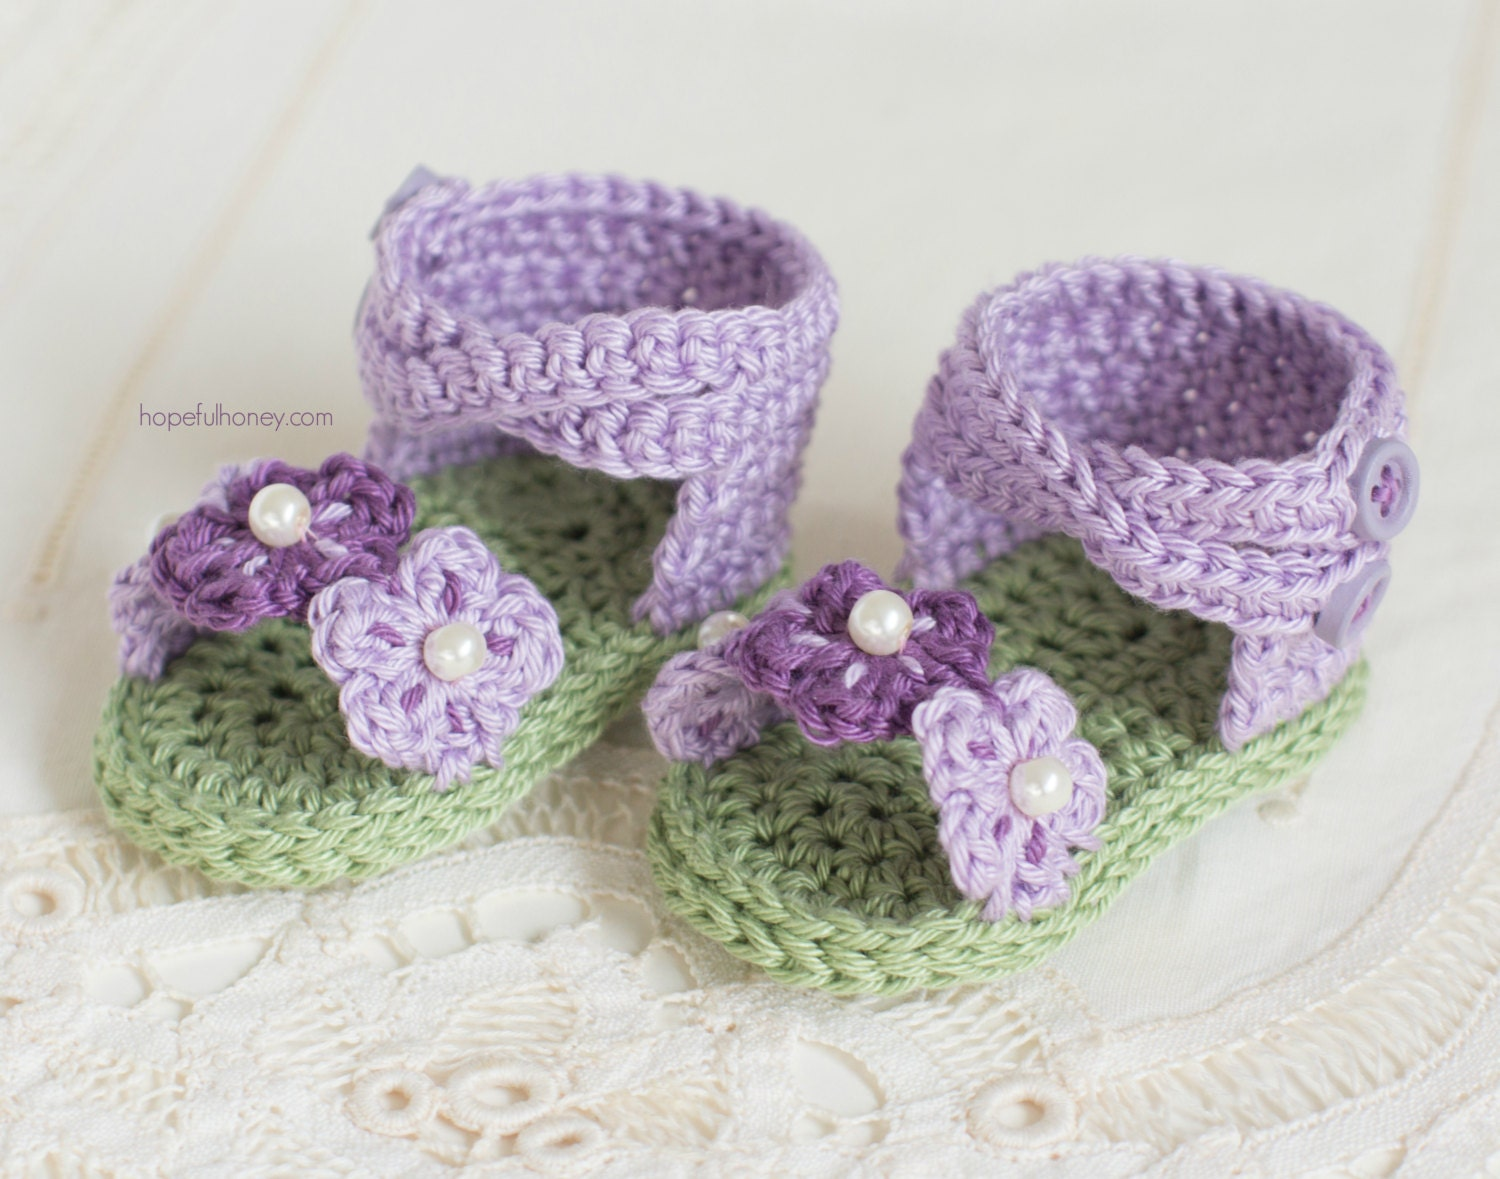 Crochet Patterns In English : CROCHET PATTERN English Violet Baby Sandals